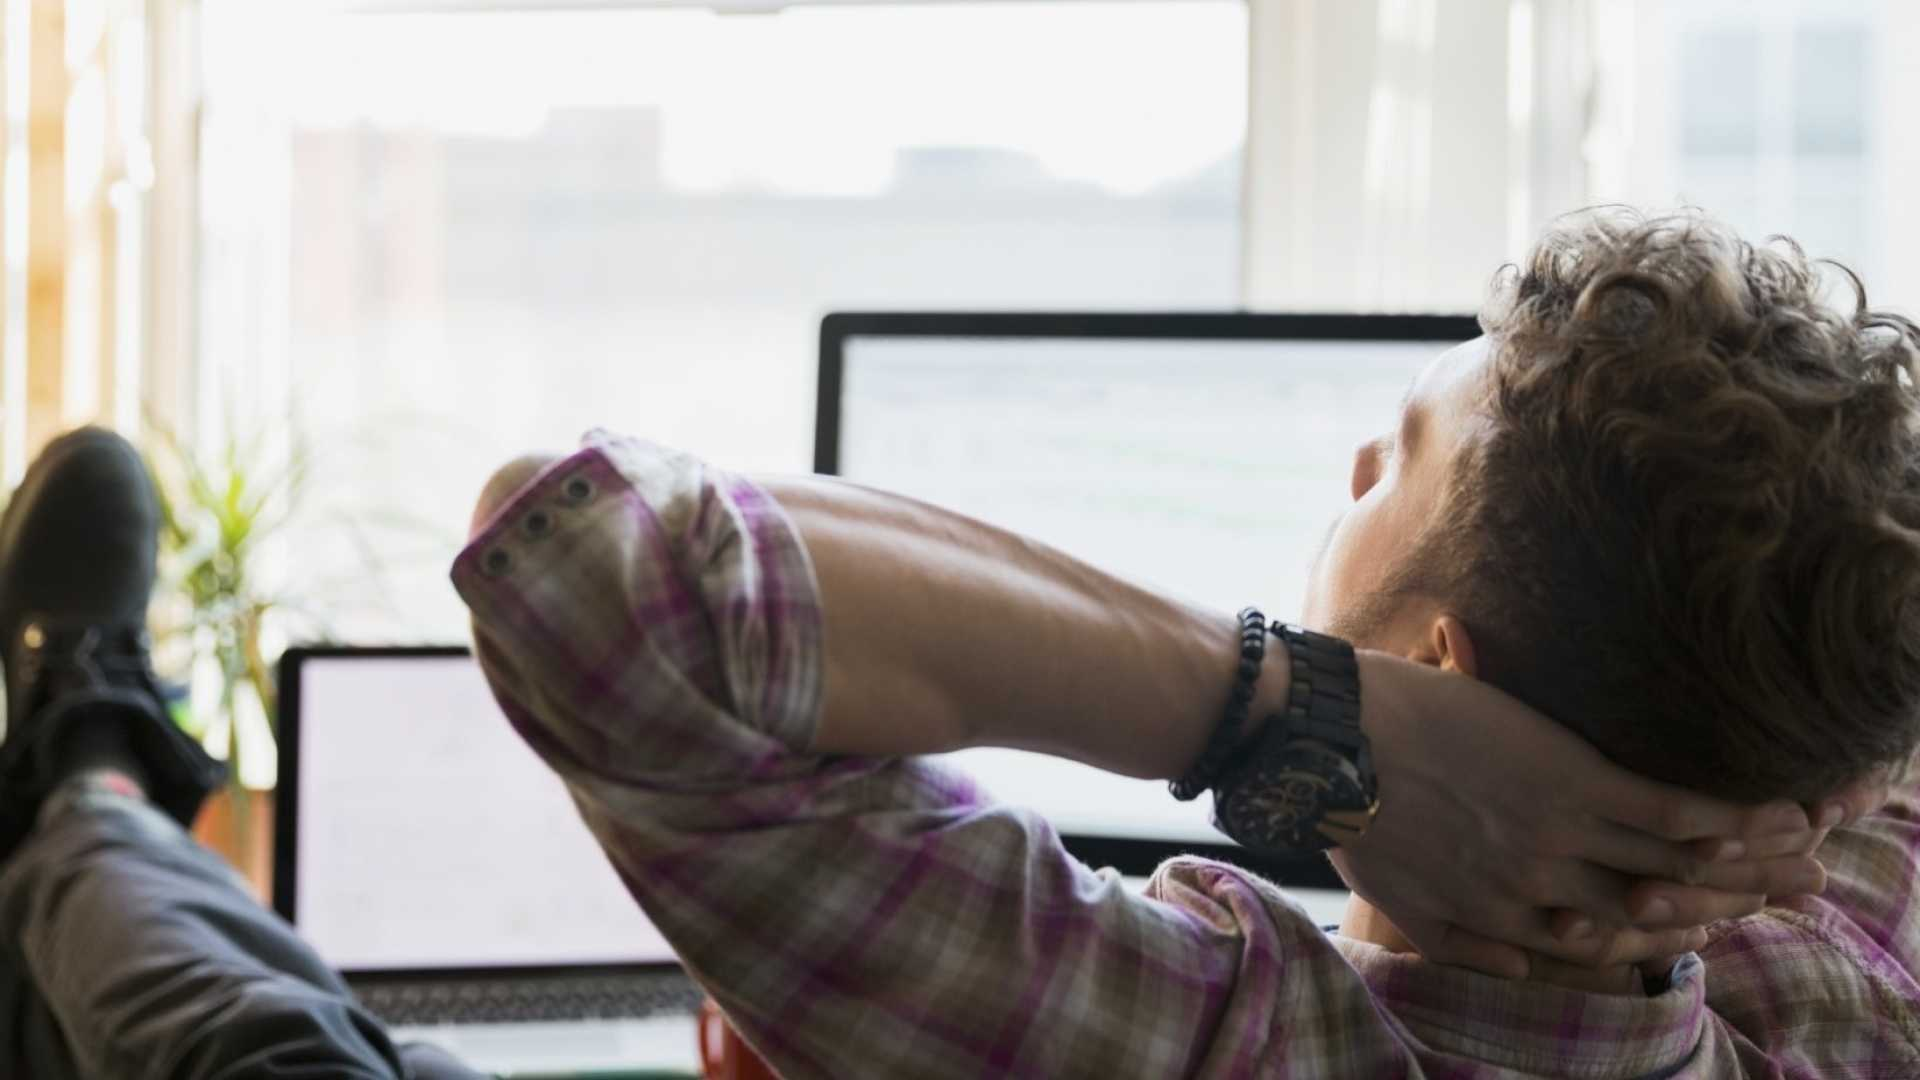 Frustrated With Your Job? Try This 1 Relaxation Exercise You Can Do At Your Desk